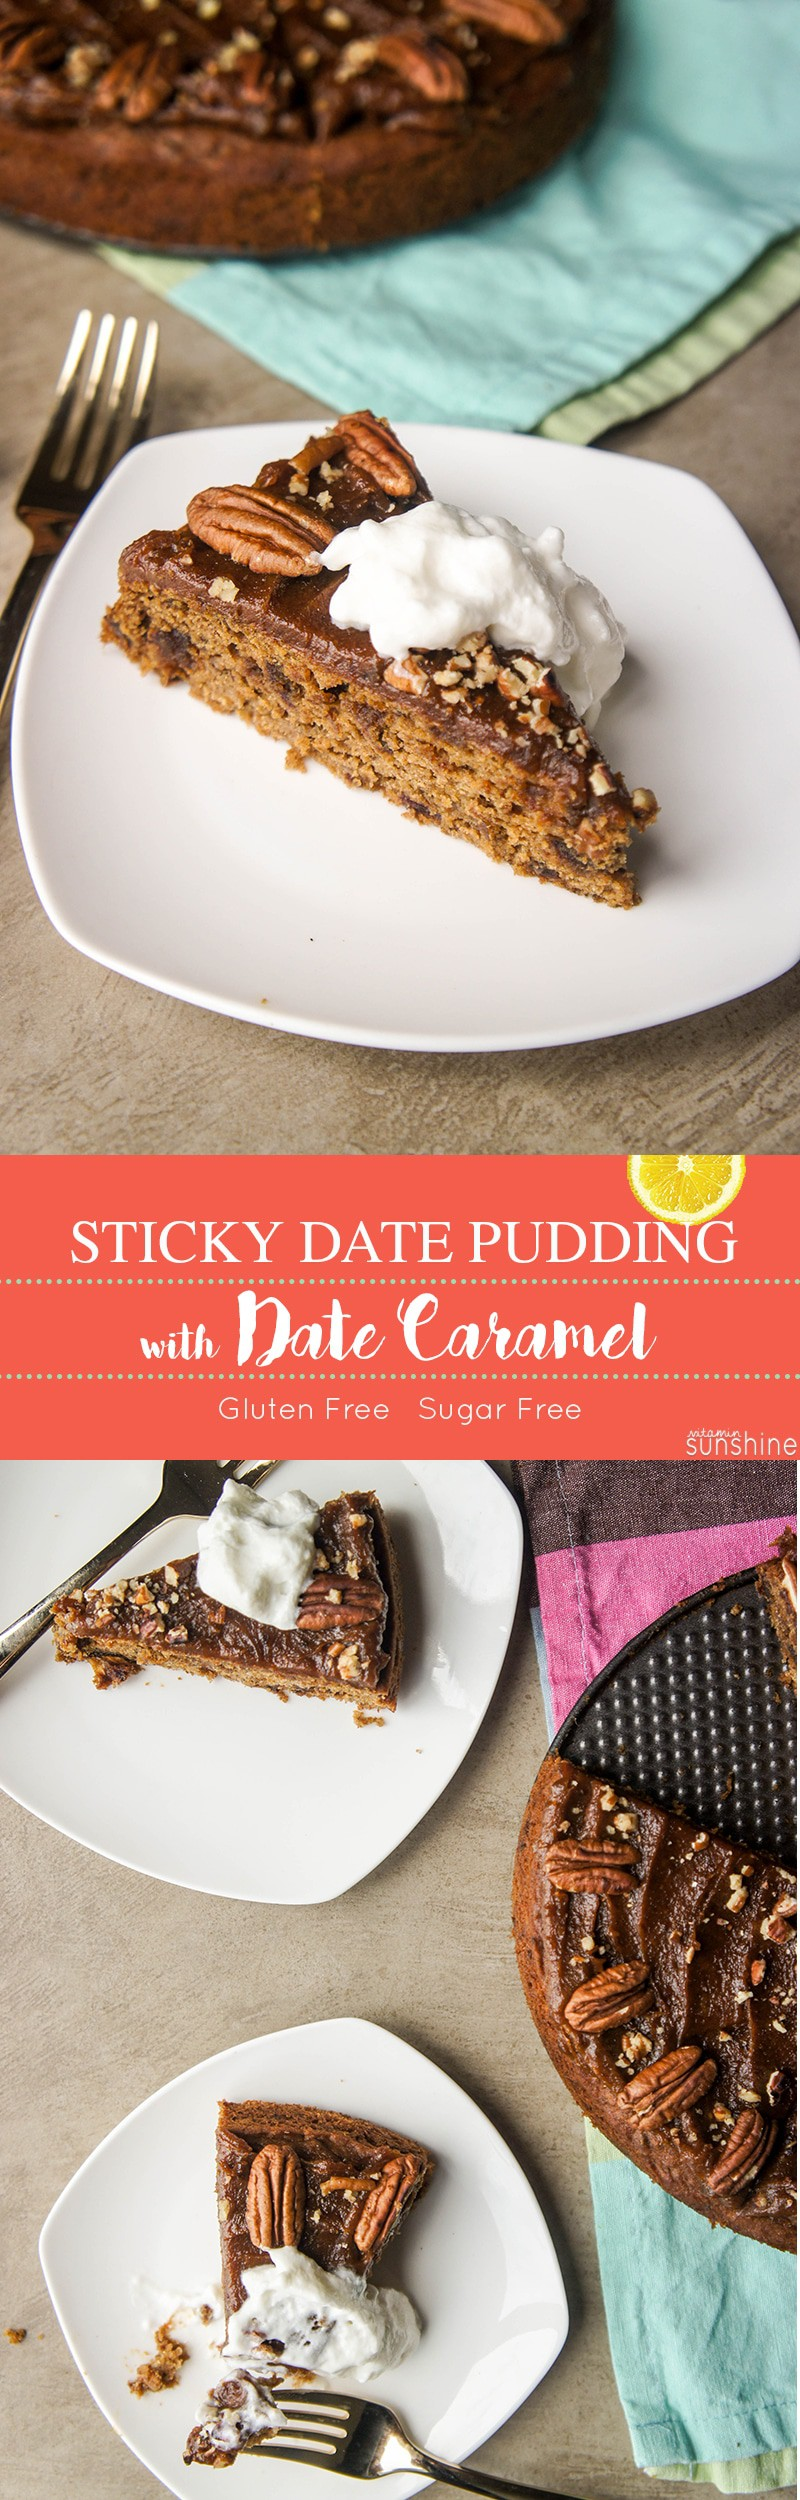 Sticky Date Pudding with Caramel Topping / This sugar free and gluten free treat tastes almost too good to be true! Sweet, moist, caramelly and subtly spicy.